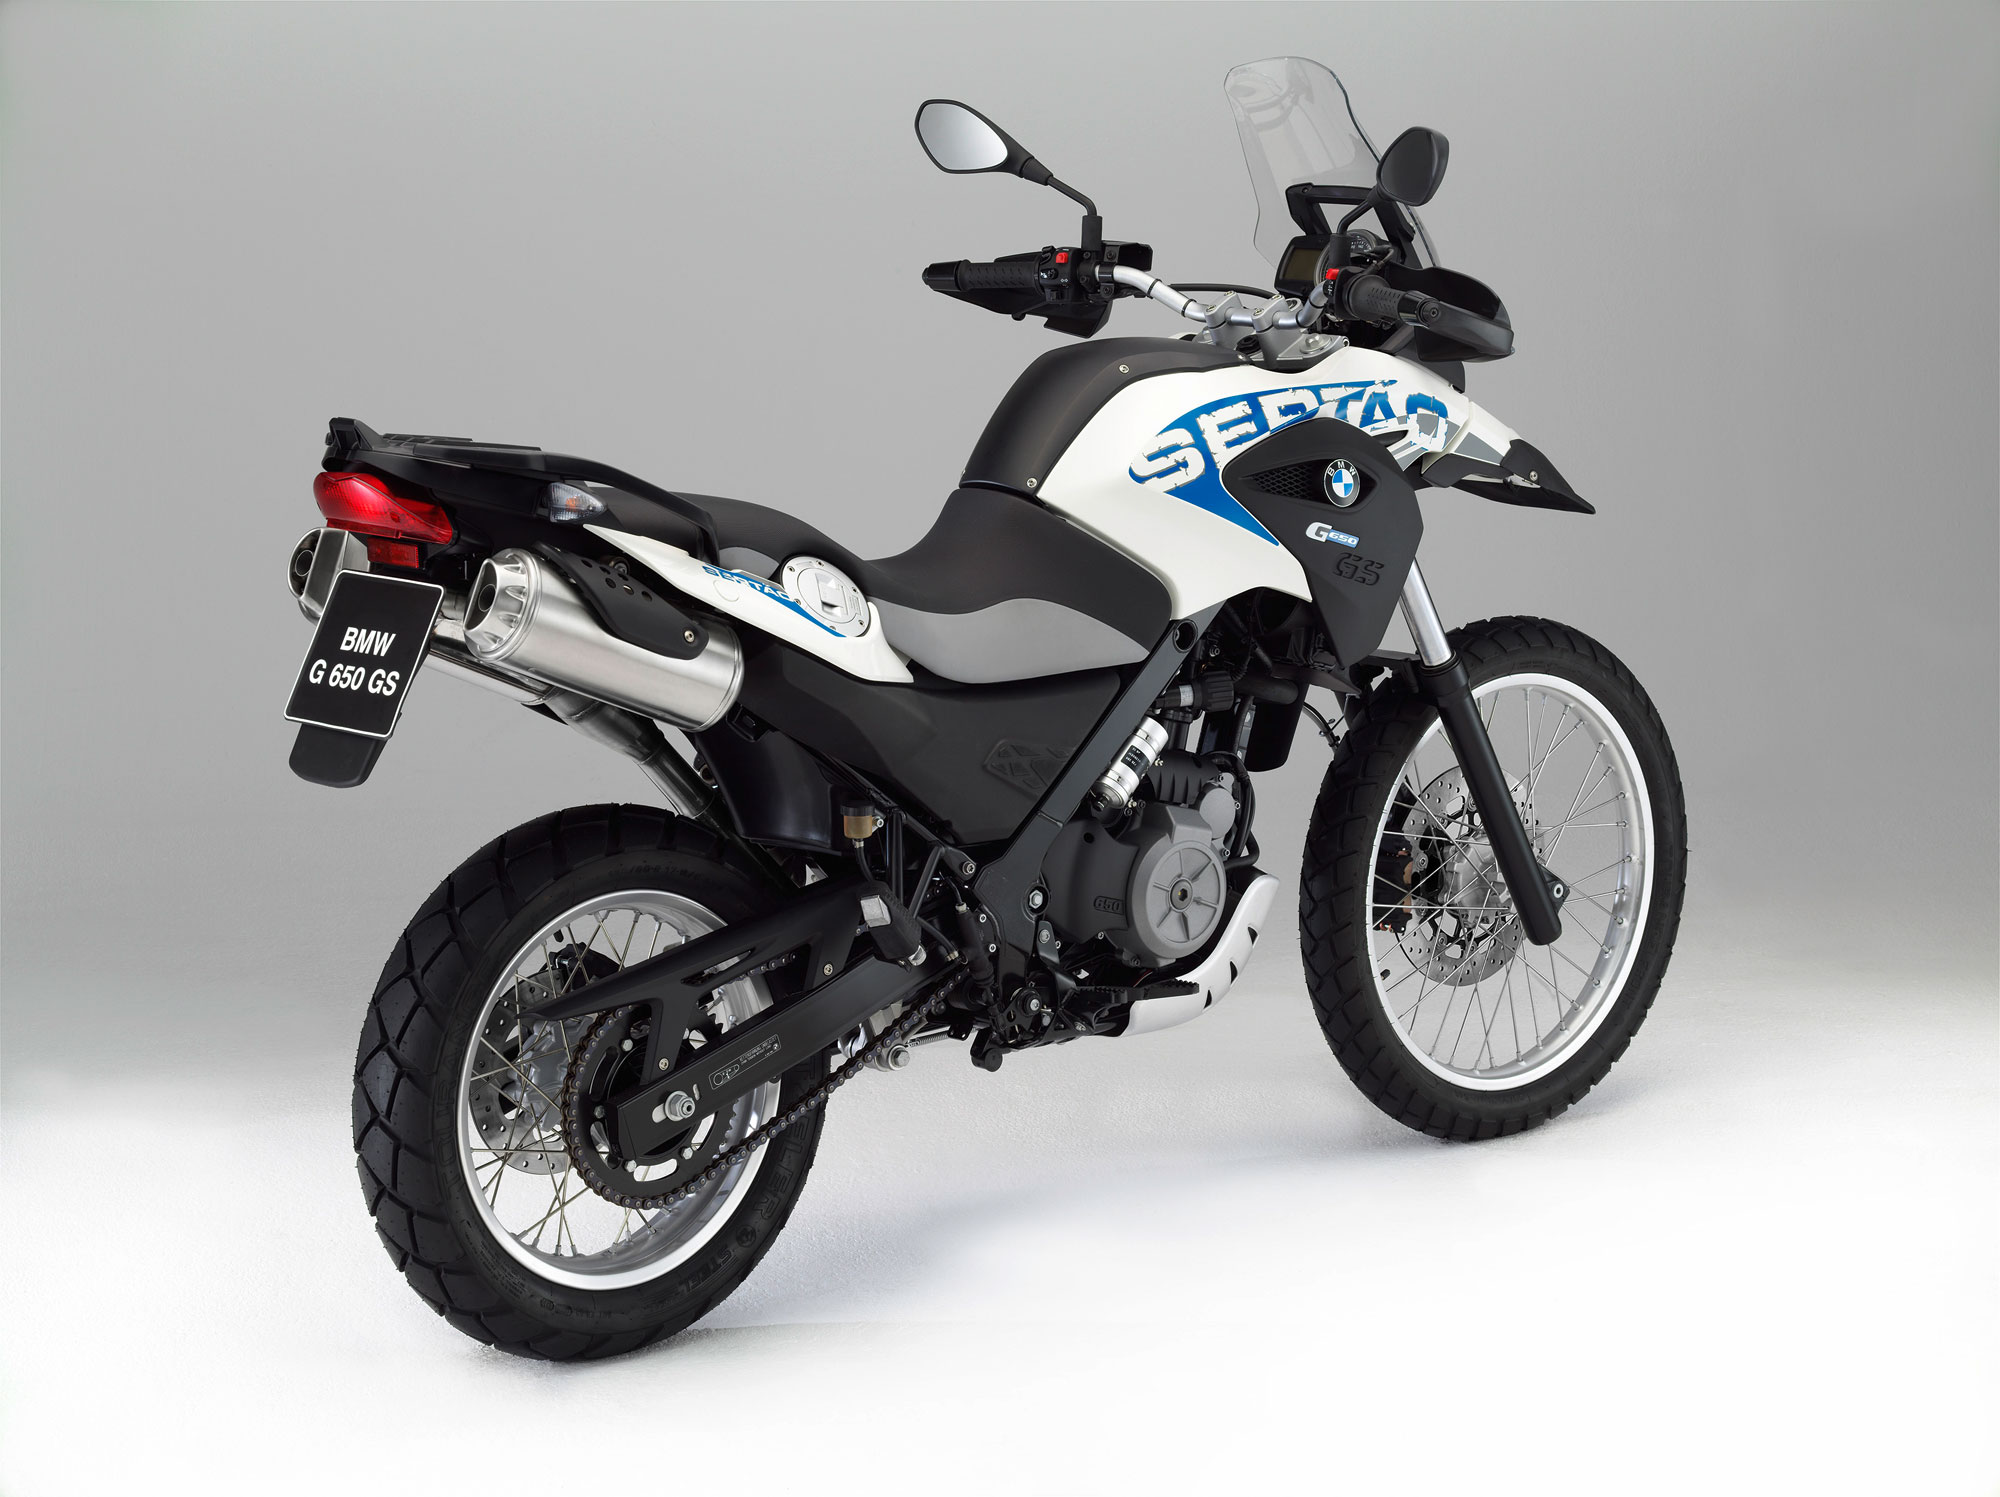 BMW G 650 GS 2011 images #8381